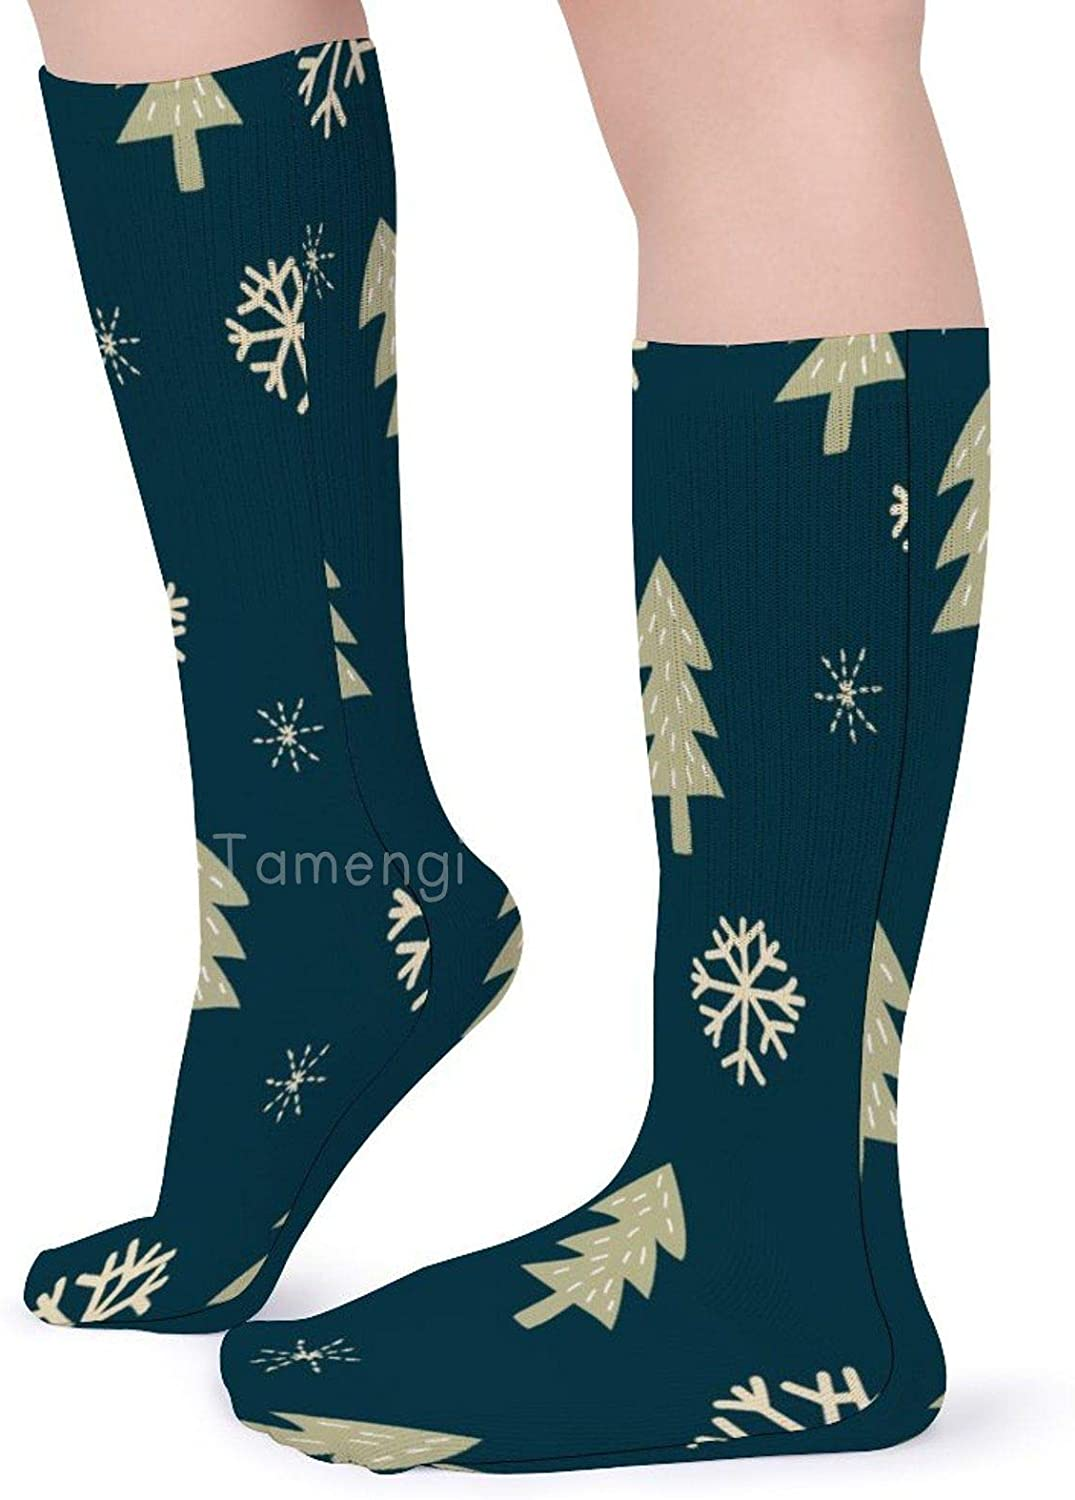 Classics Personalized Long Tube Stockings Merry Christmas Snowflake Crew Socks 15.7inch One Size Athletic Stockings for Men Women